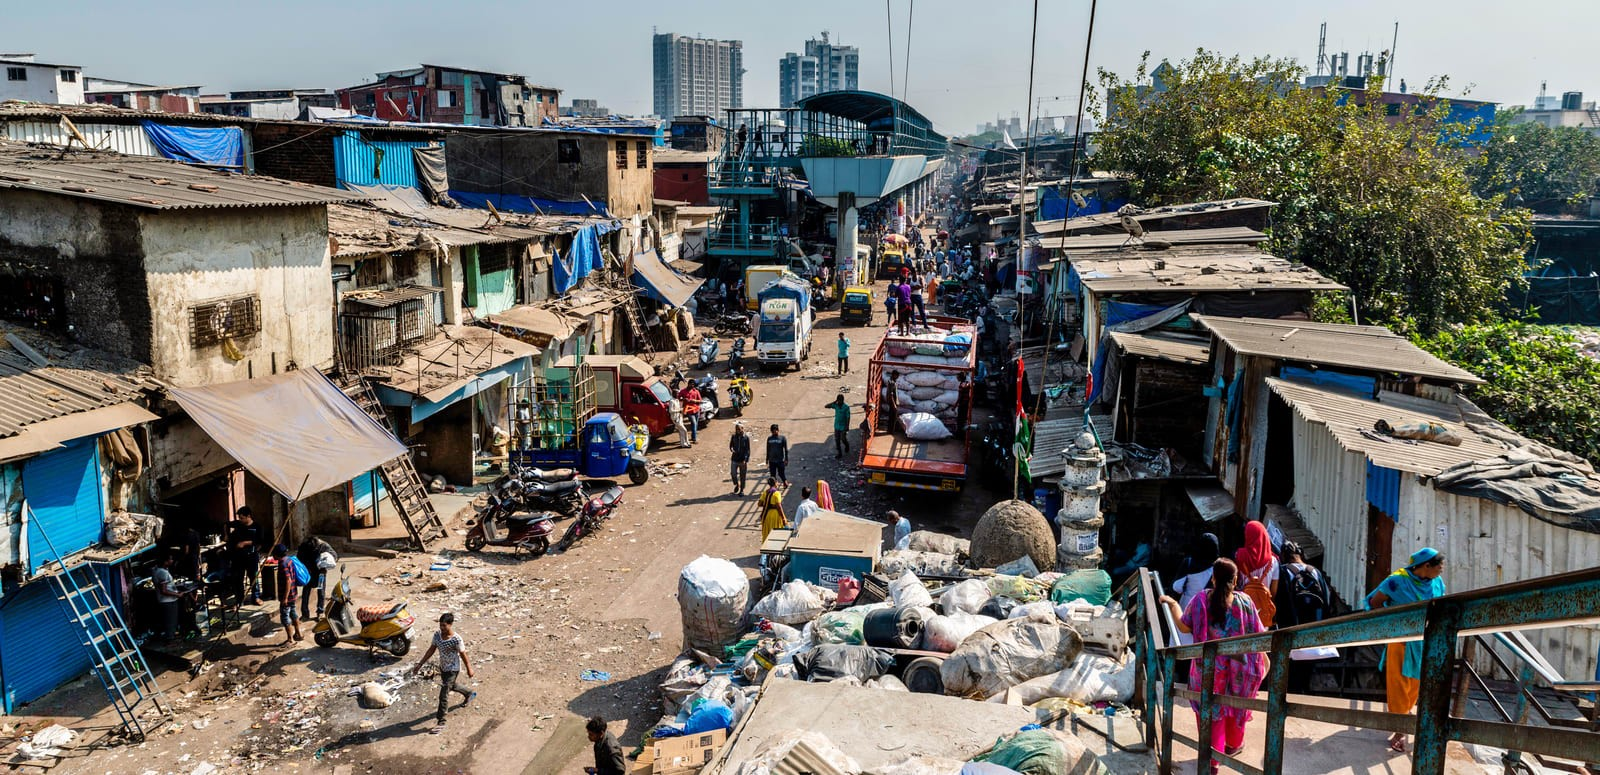 A history of the slums of Dharavi - RTF   Rethinking The Future